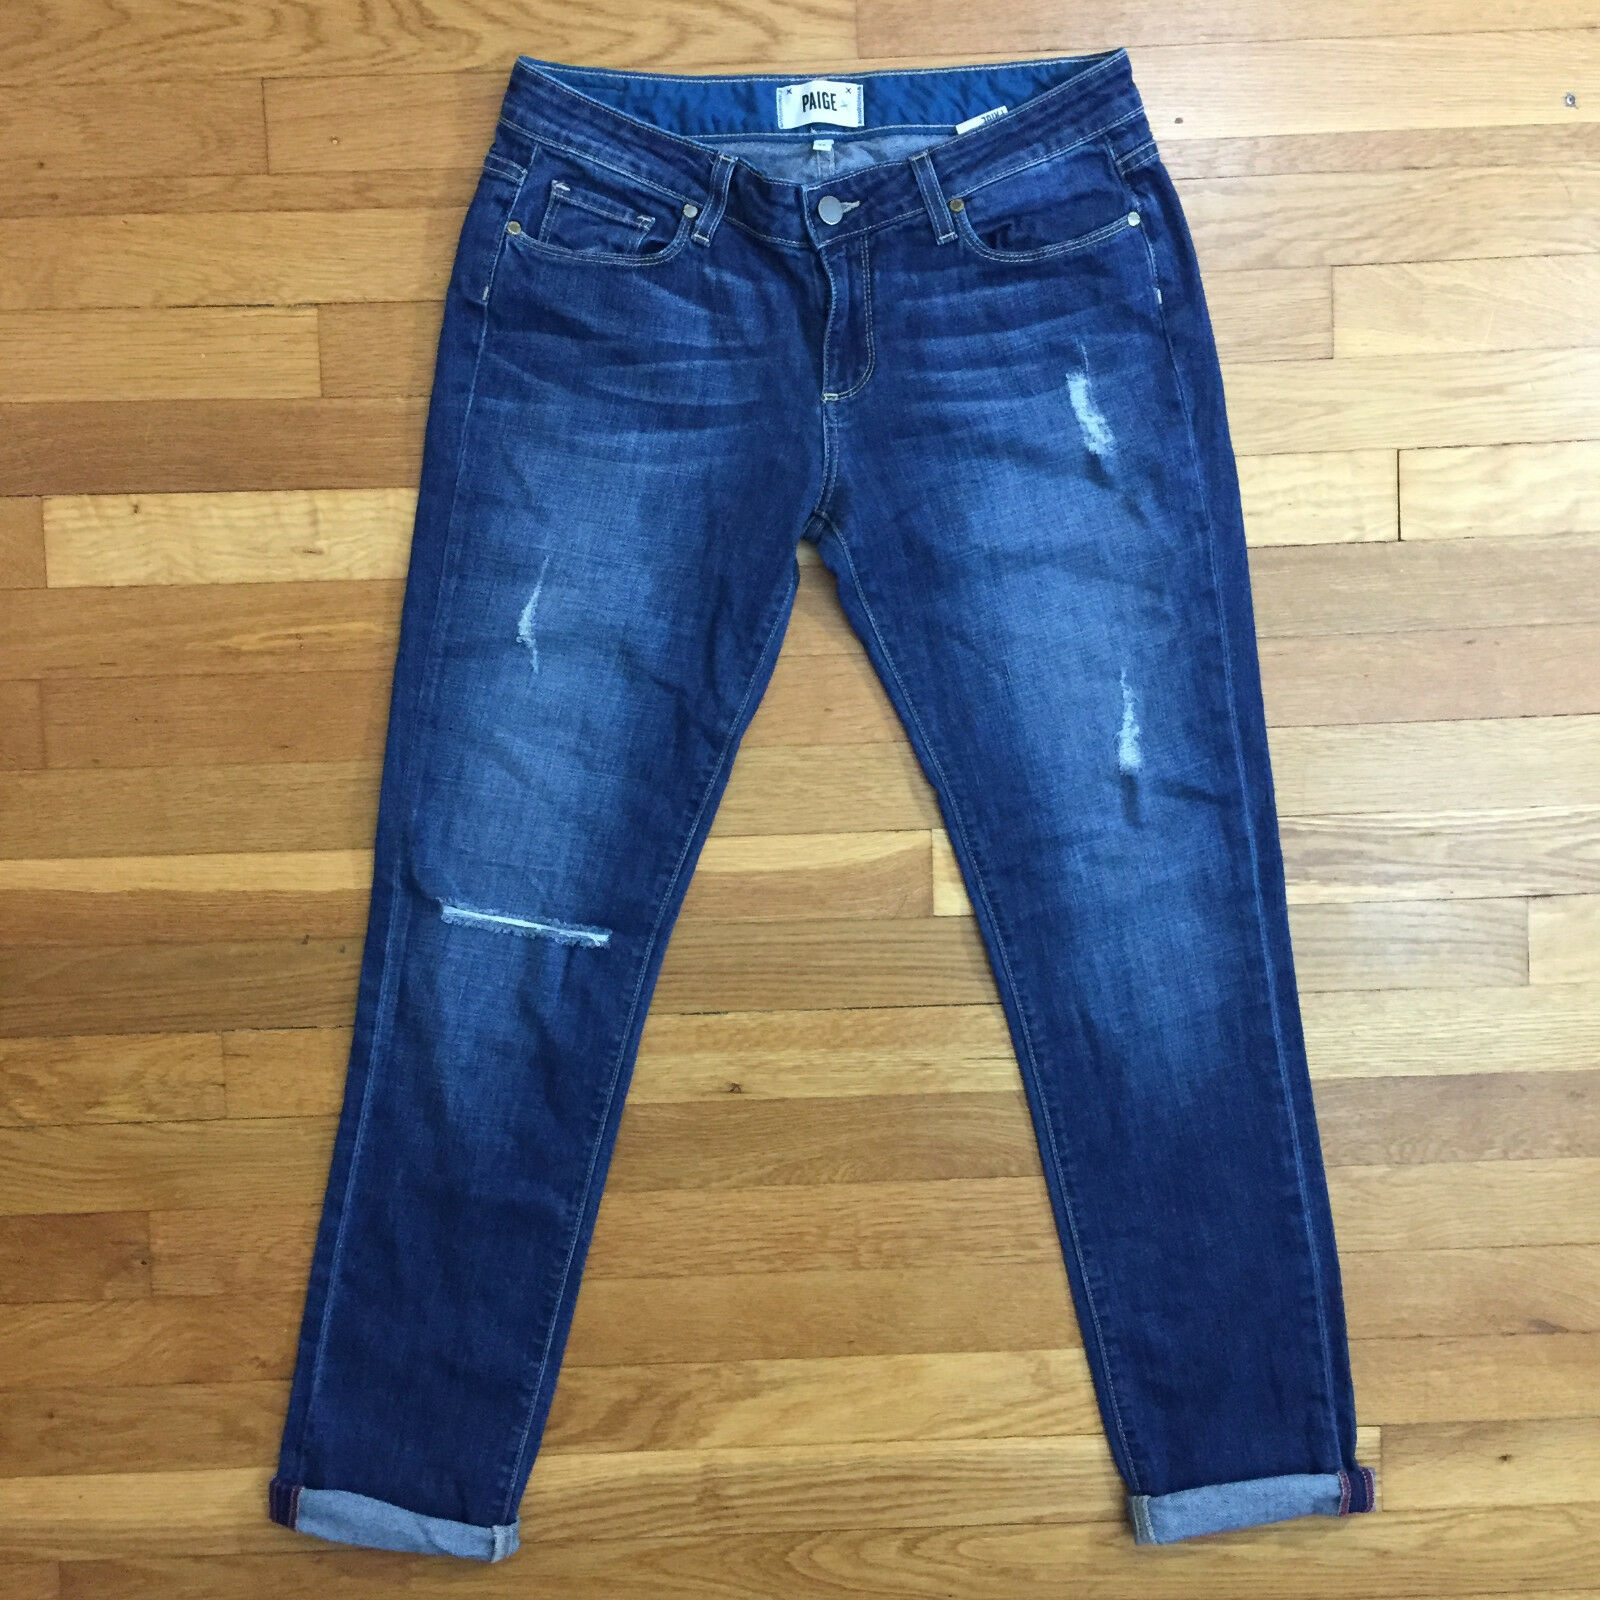 PAIGE Jimmy Jimmy Skinny Distressed Women's bluee Jeans Size 28